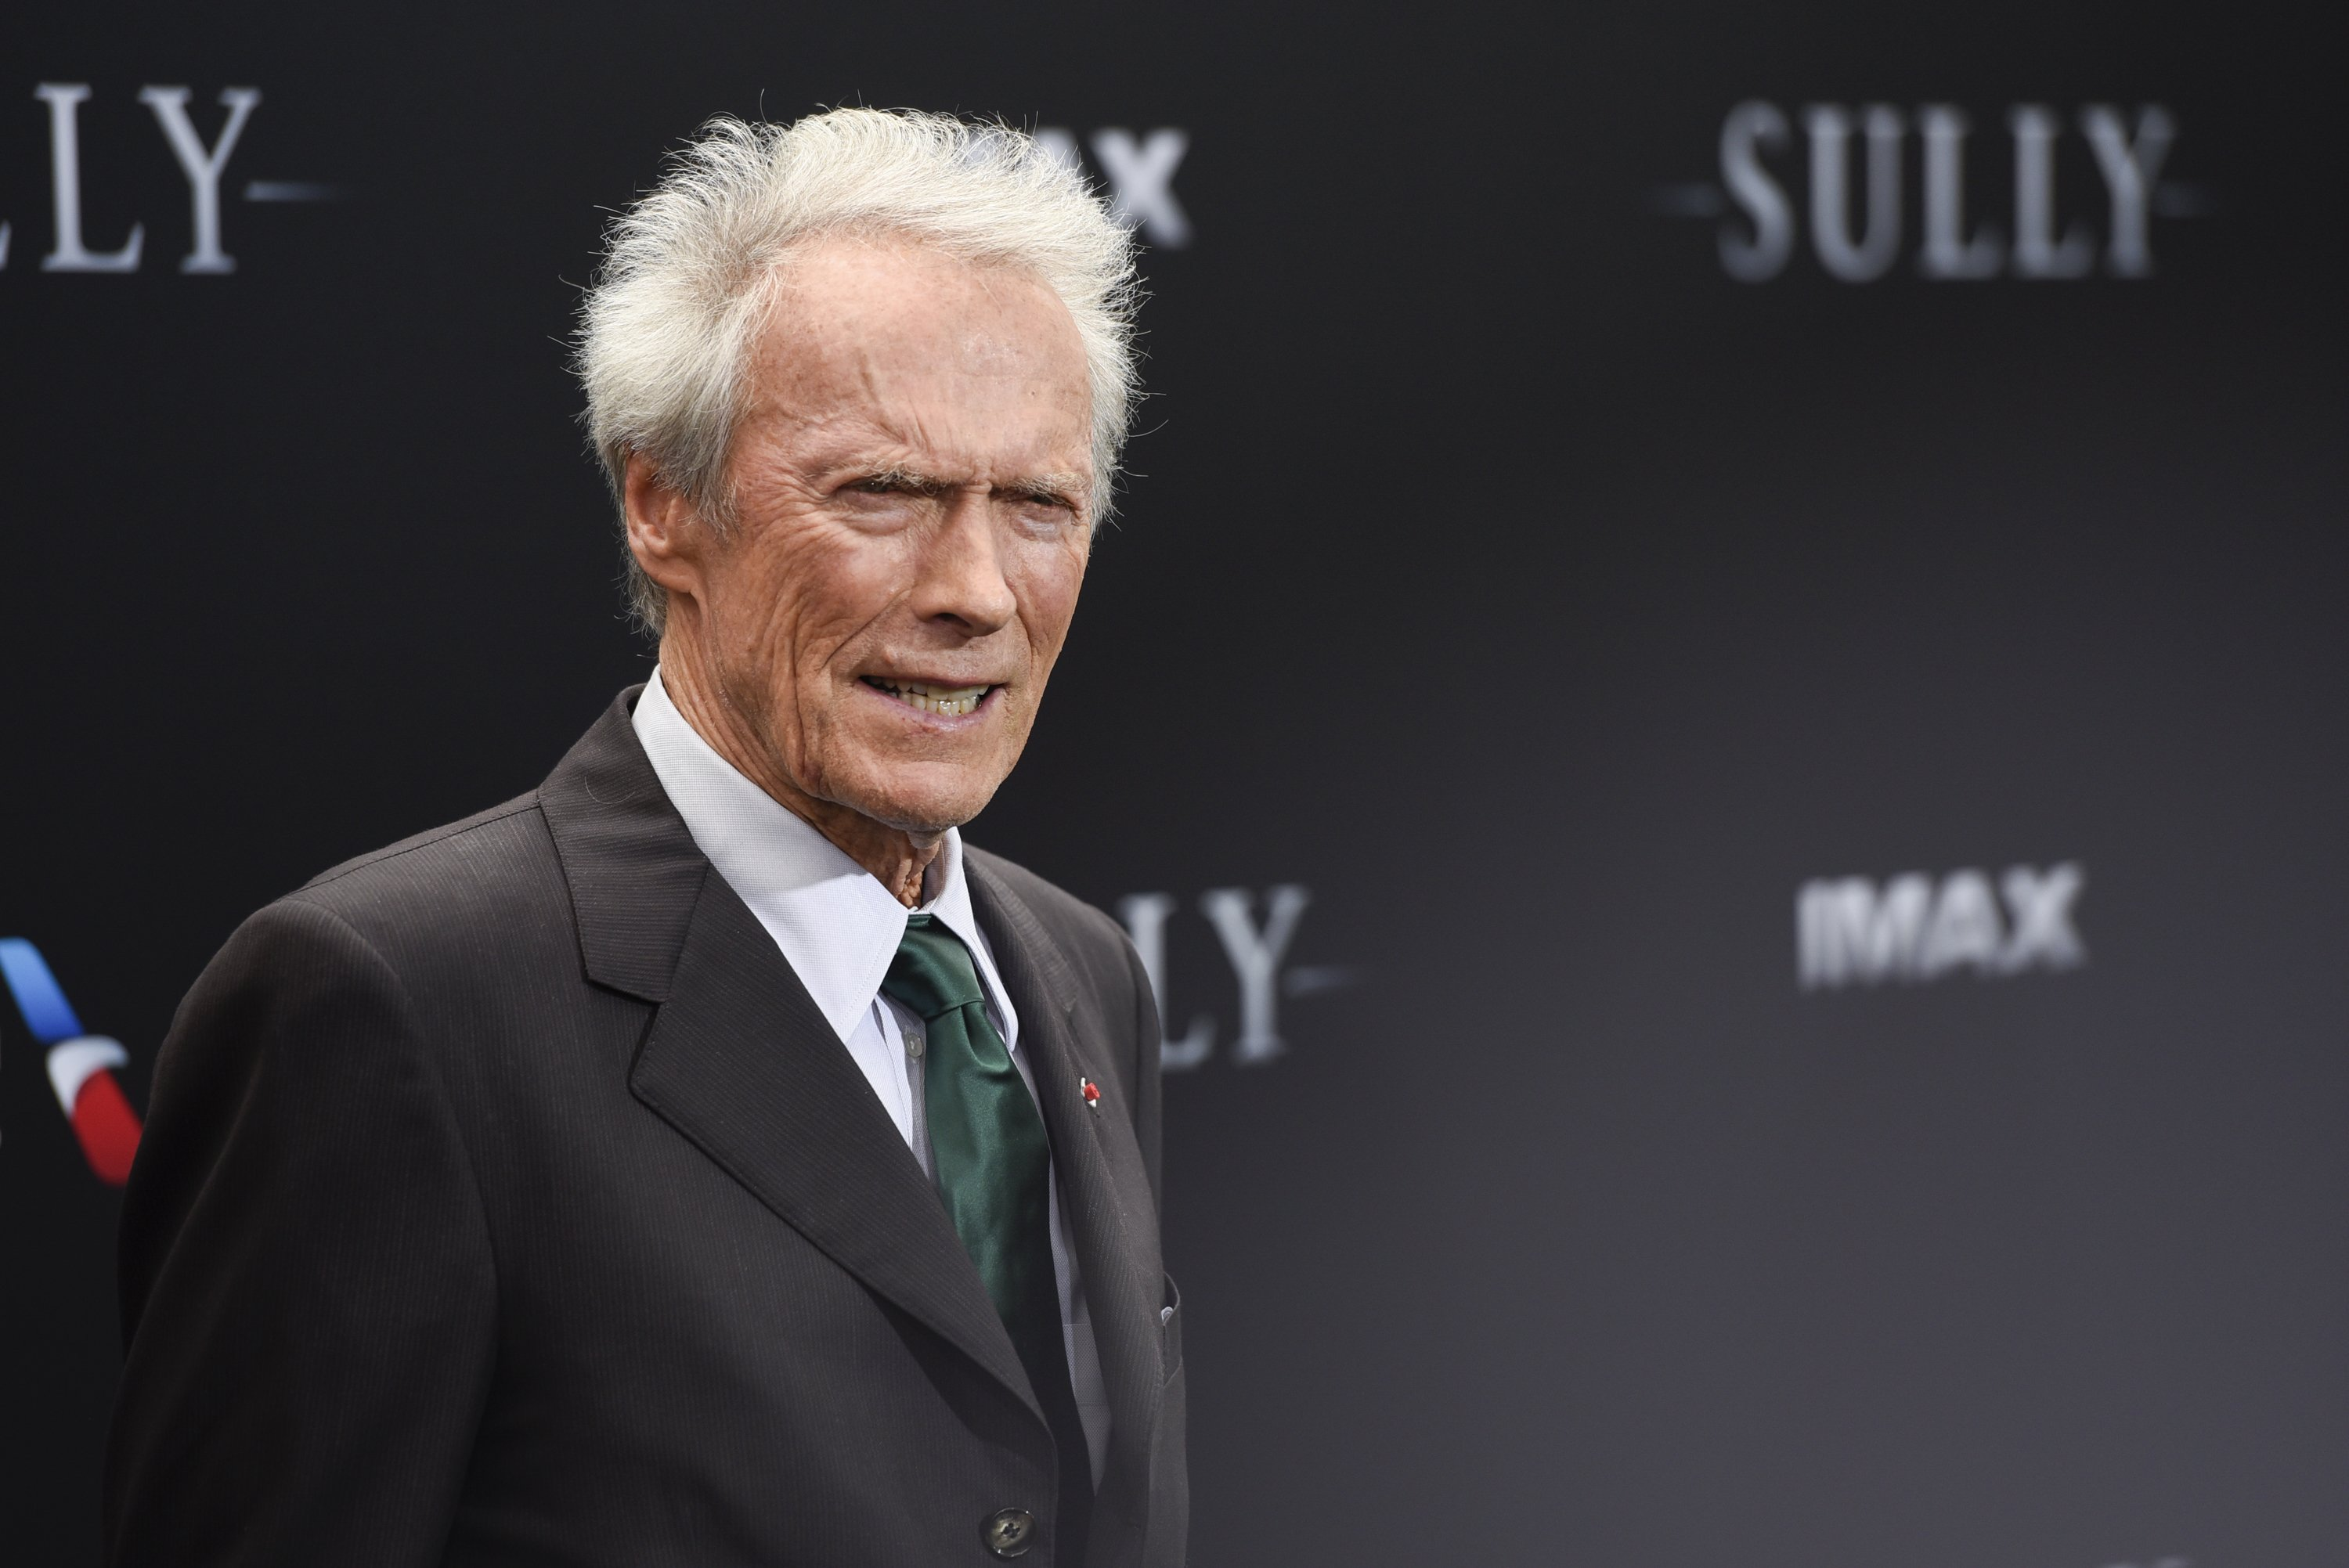 """Clint Eastwood attends the premiere of """"Sully"""" in New York City on September 6, 2016 